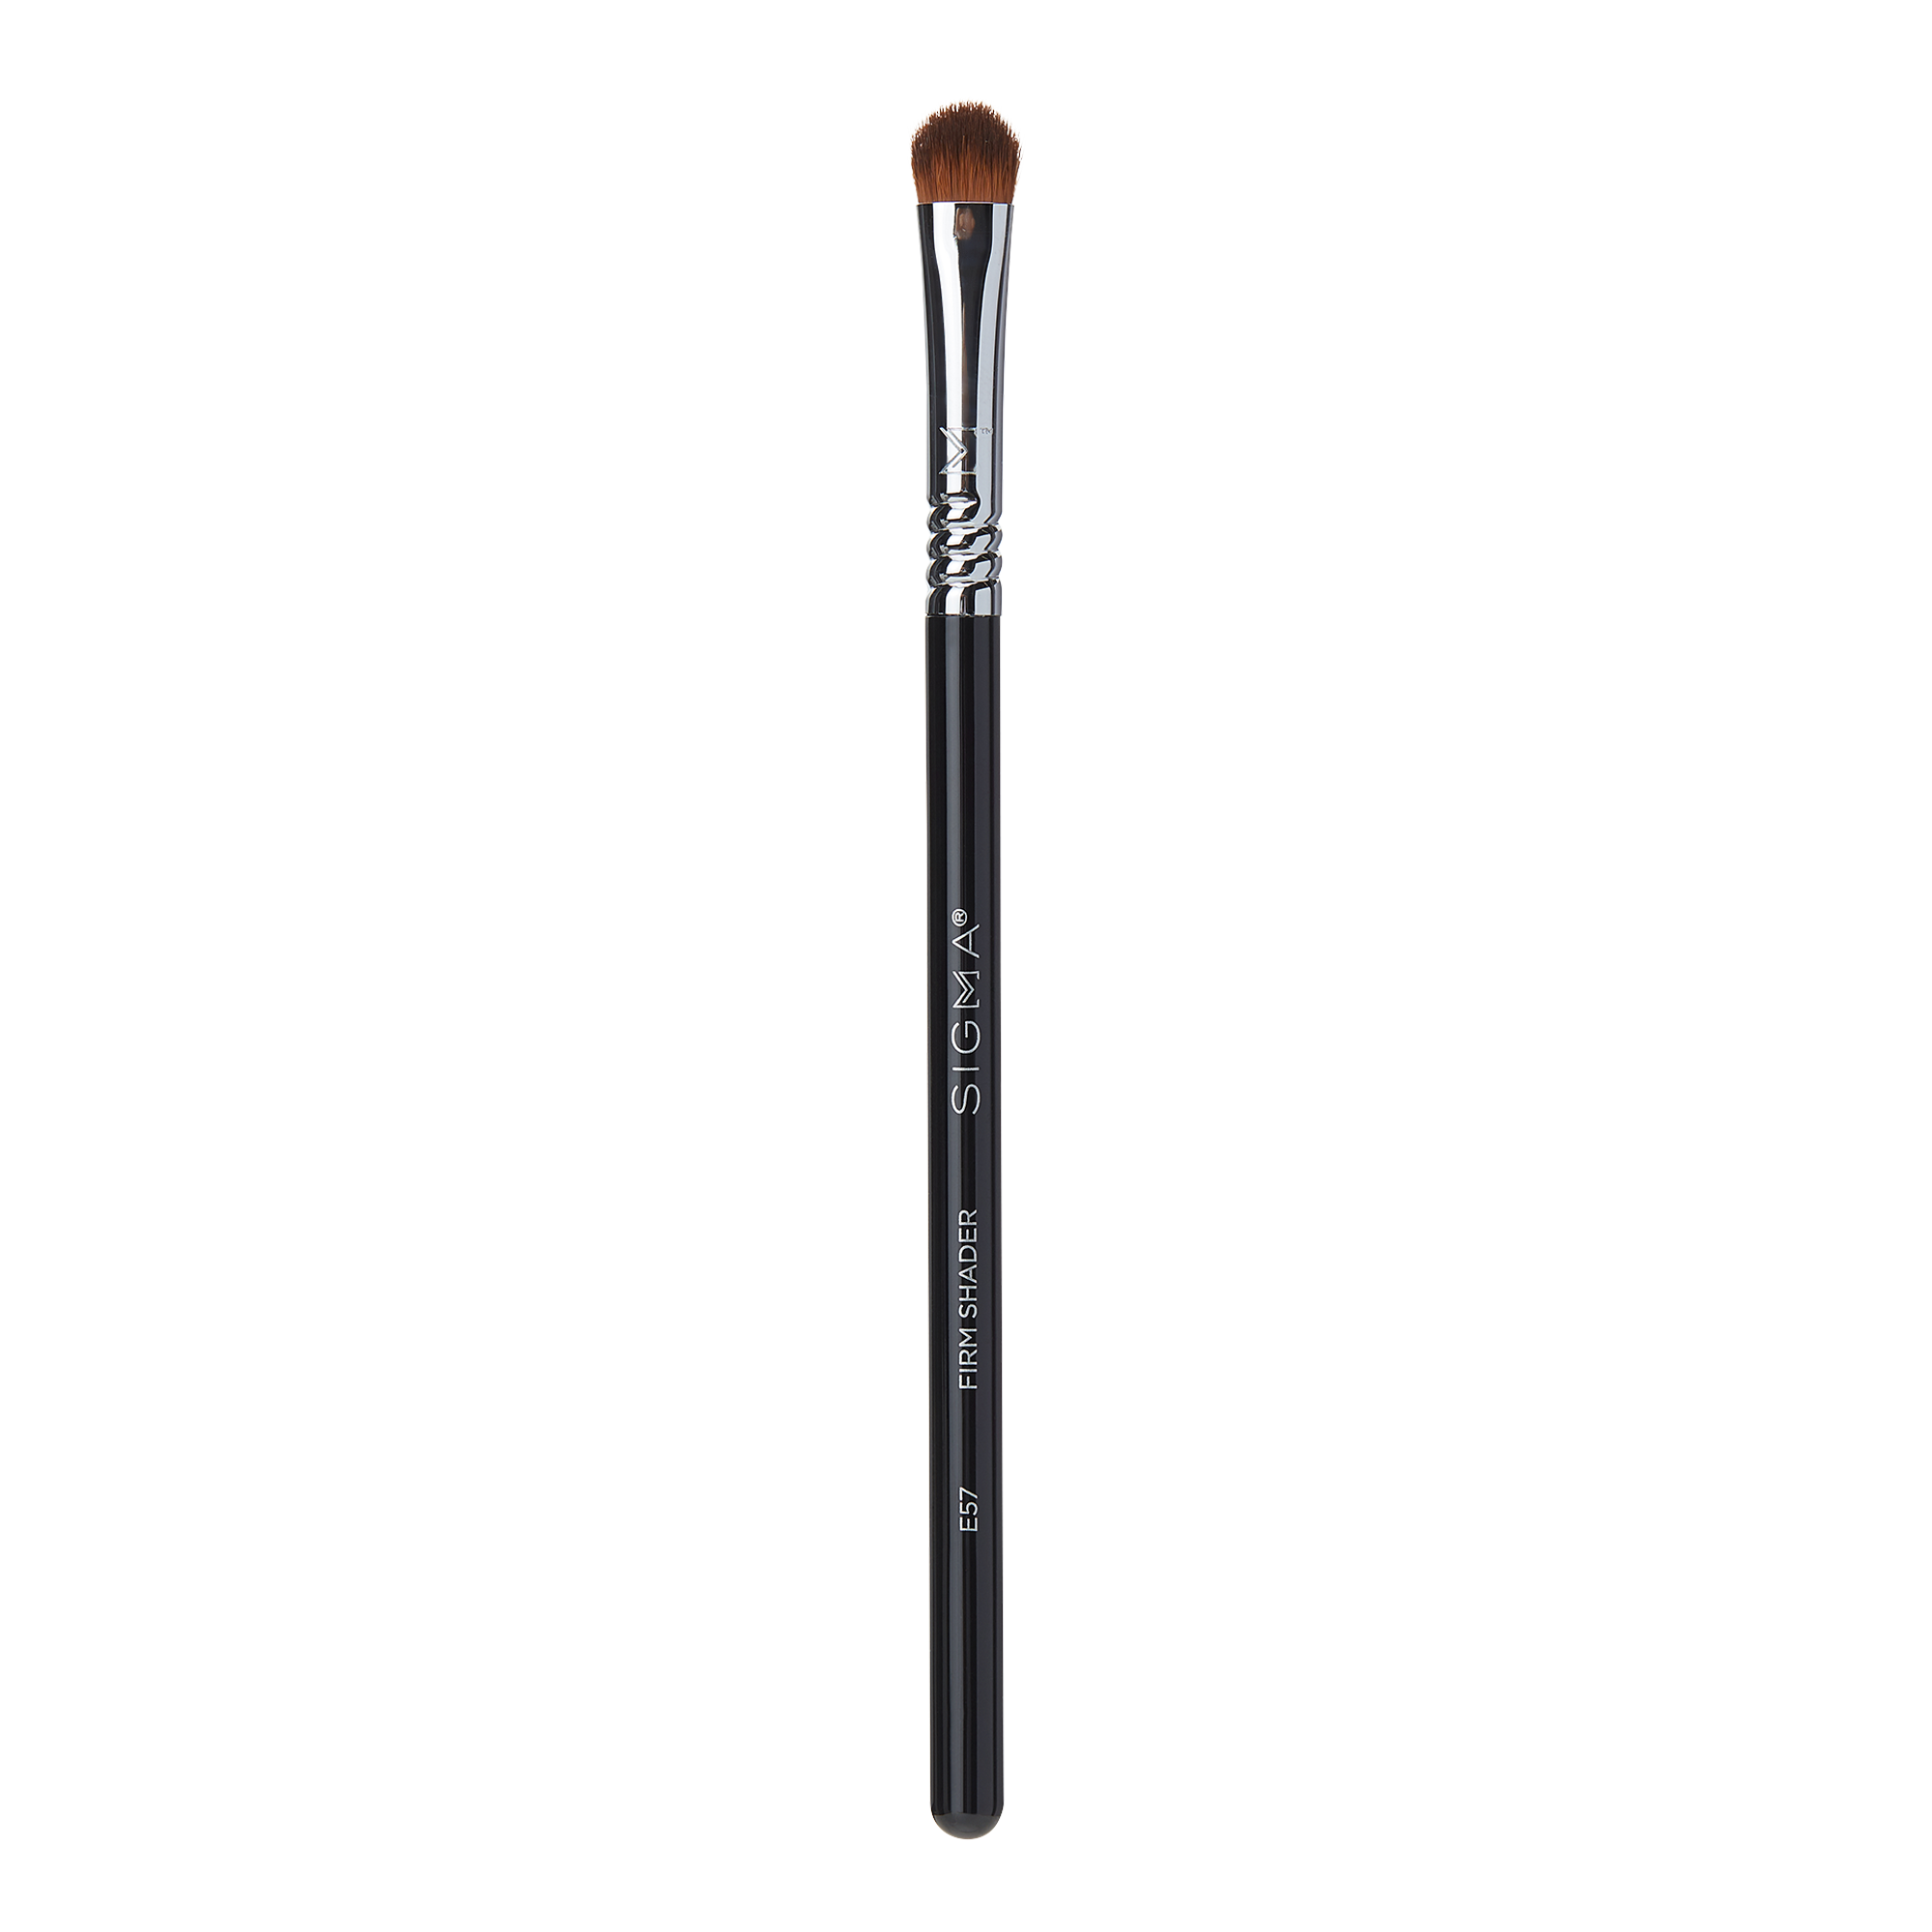 E57 Firm Shader Brush